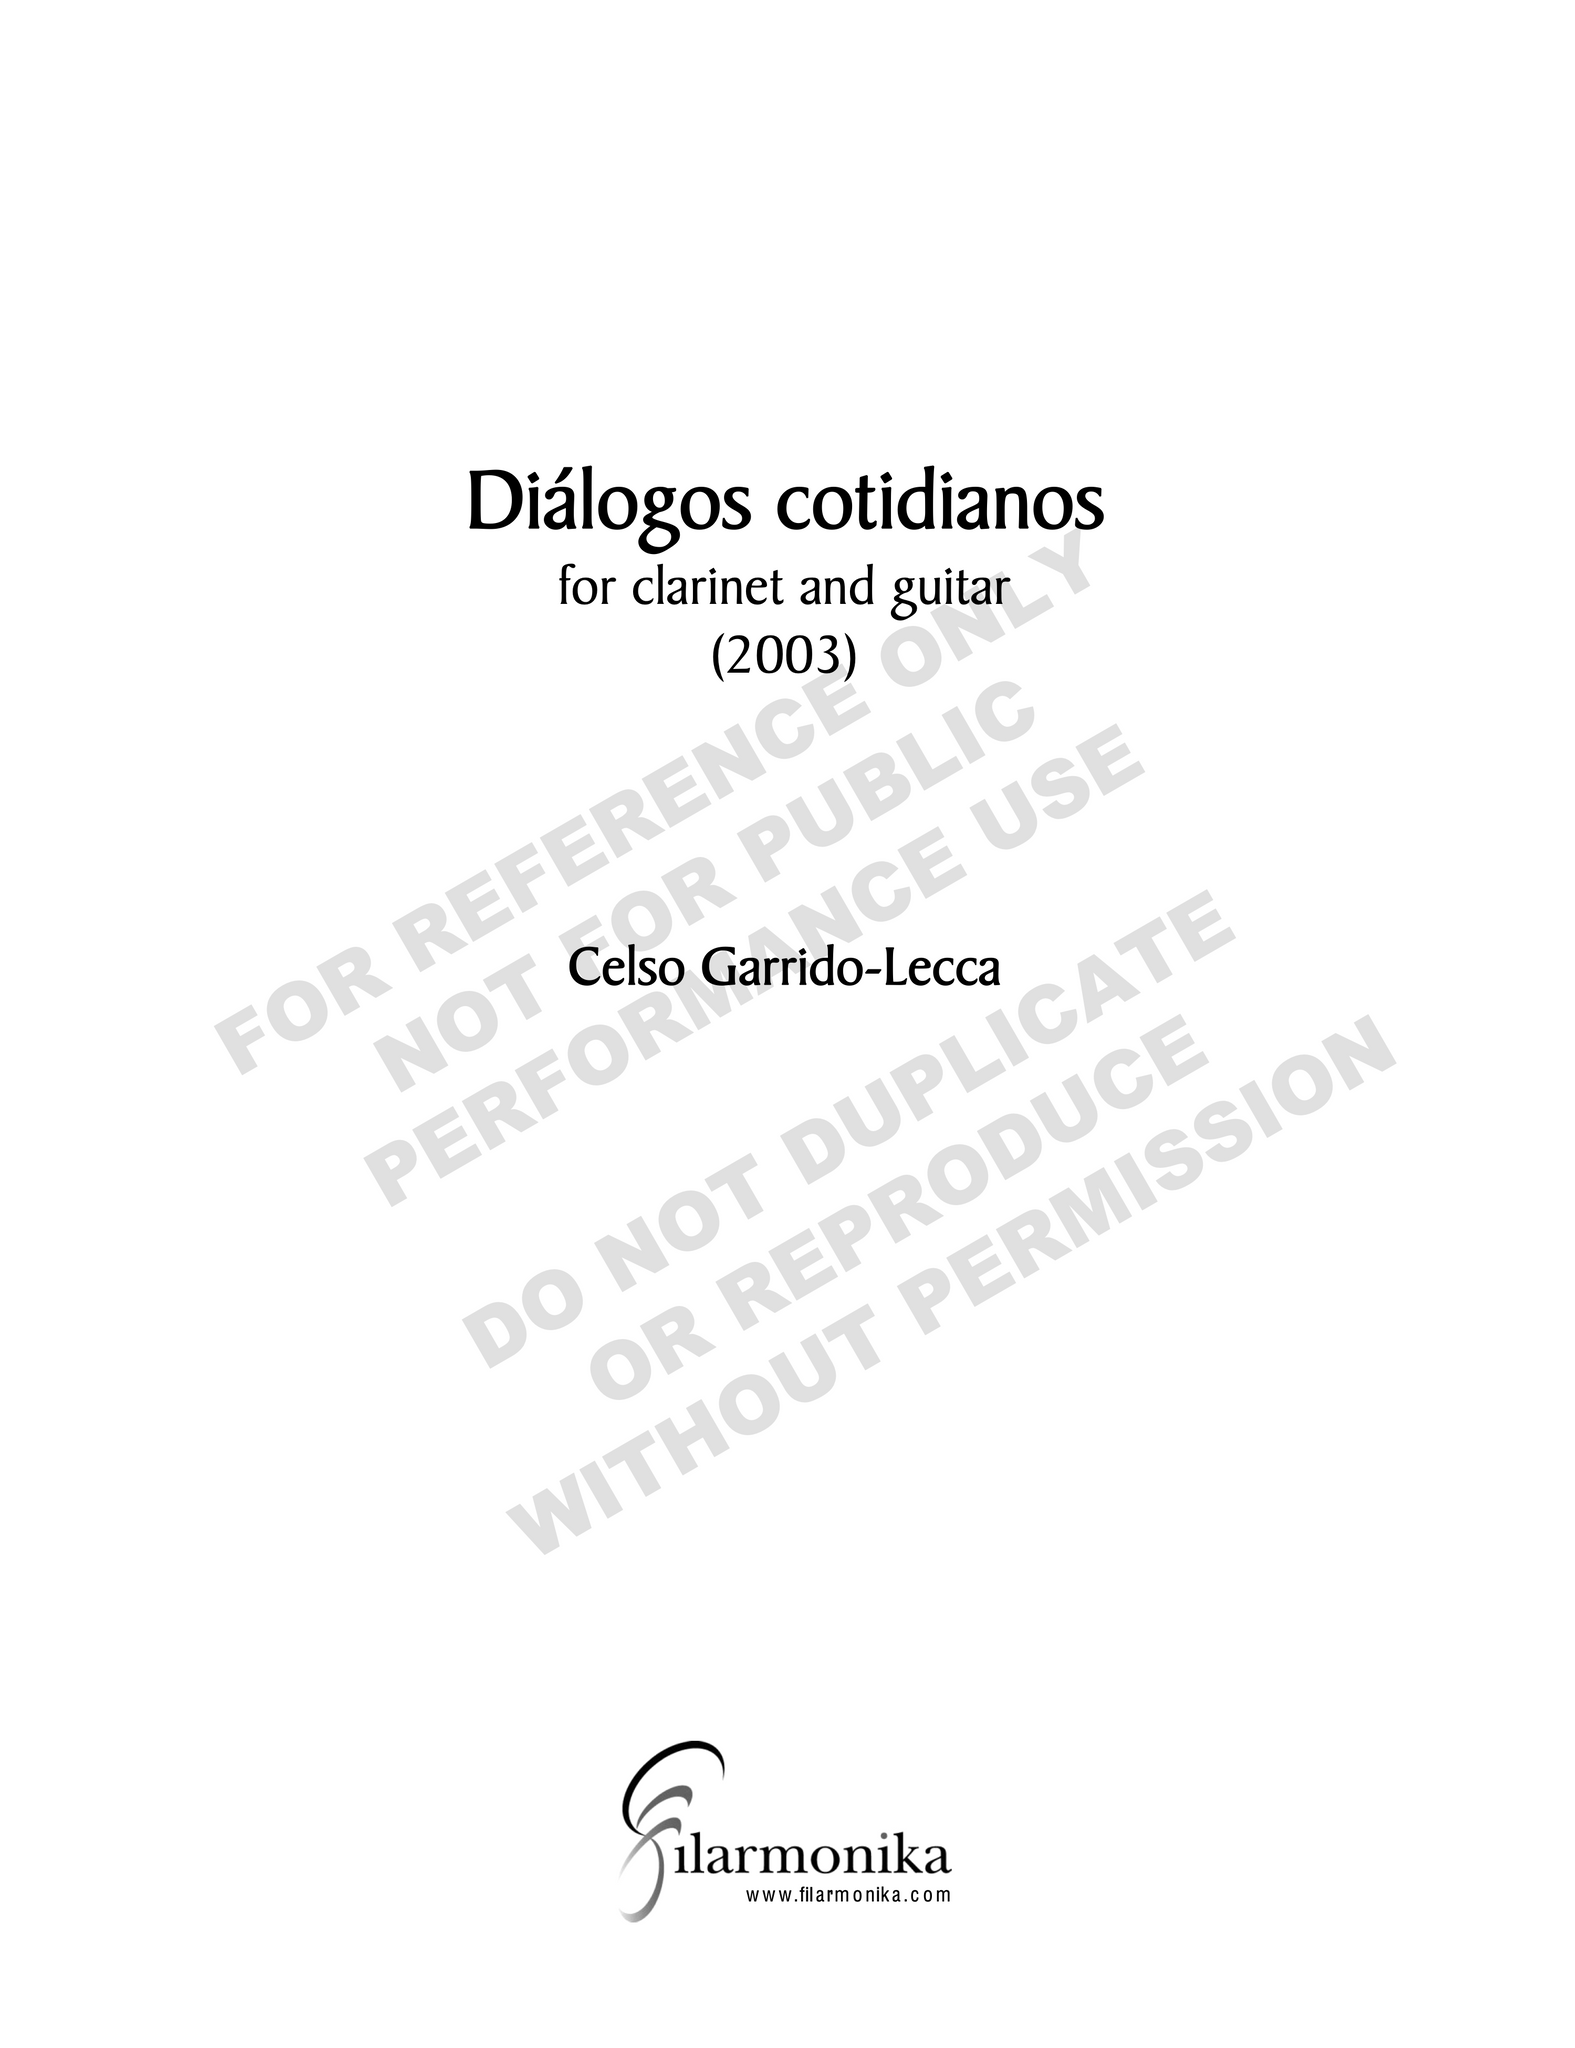 Diálogos cotidianos, for clarinet and guitar